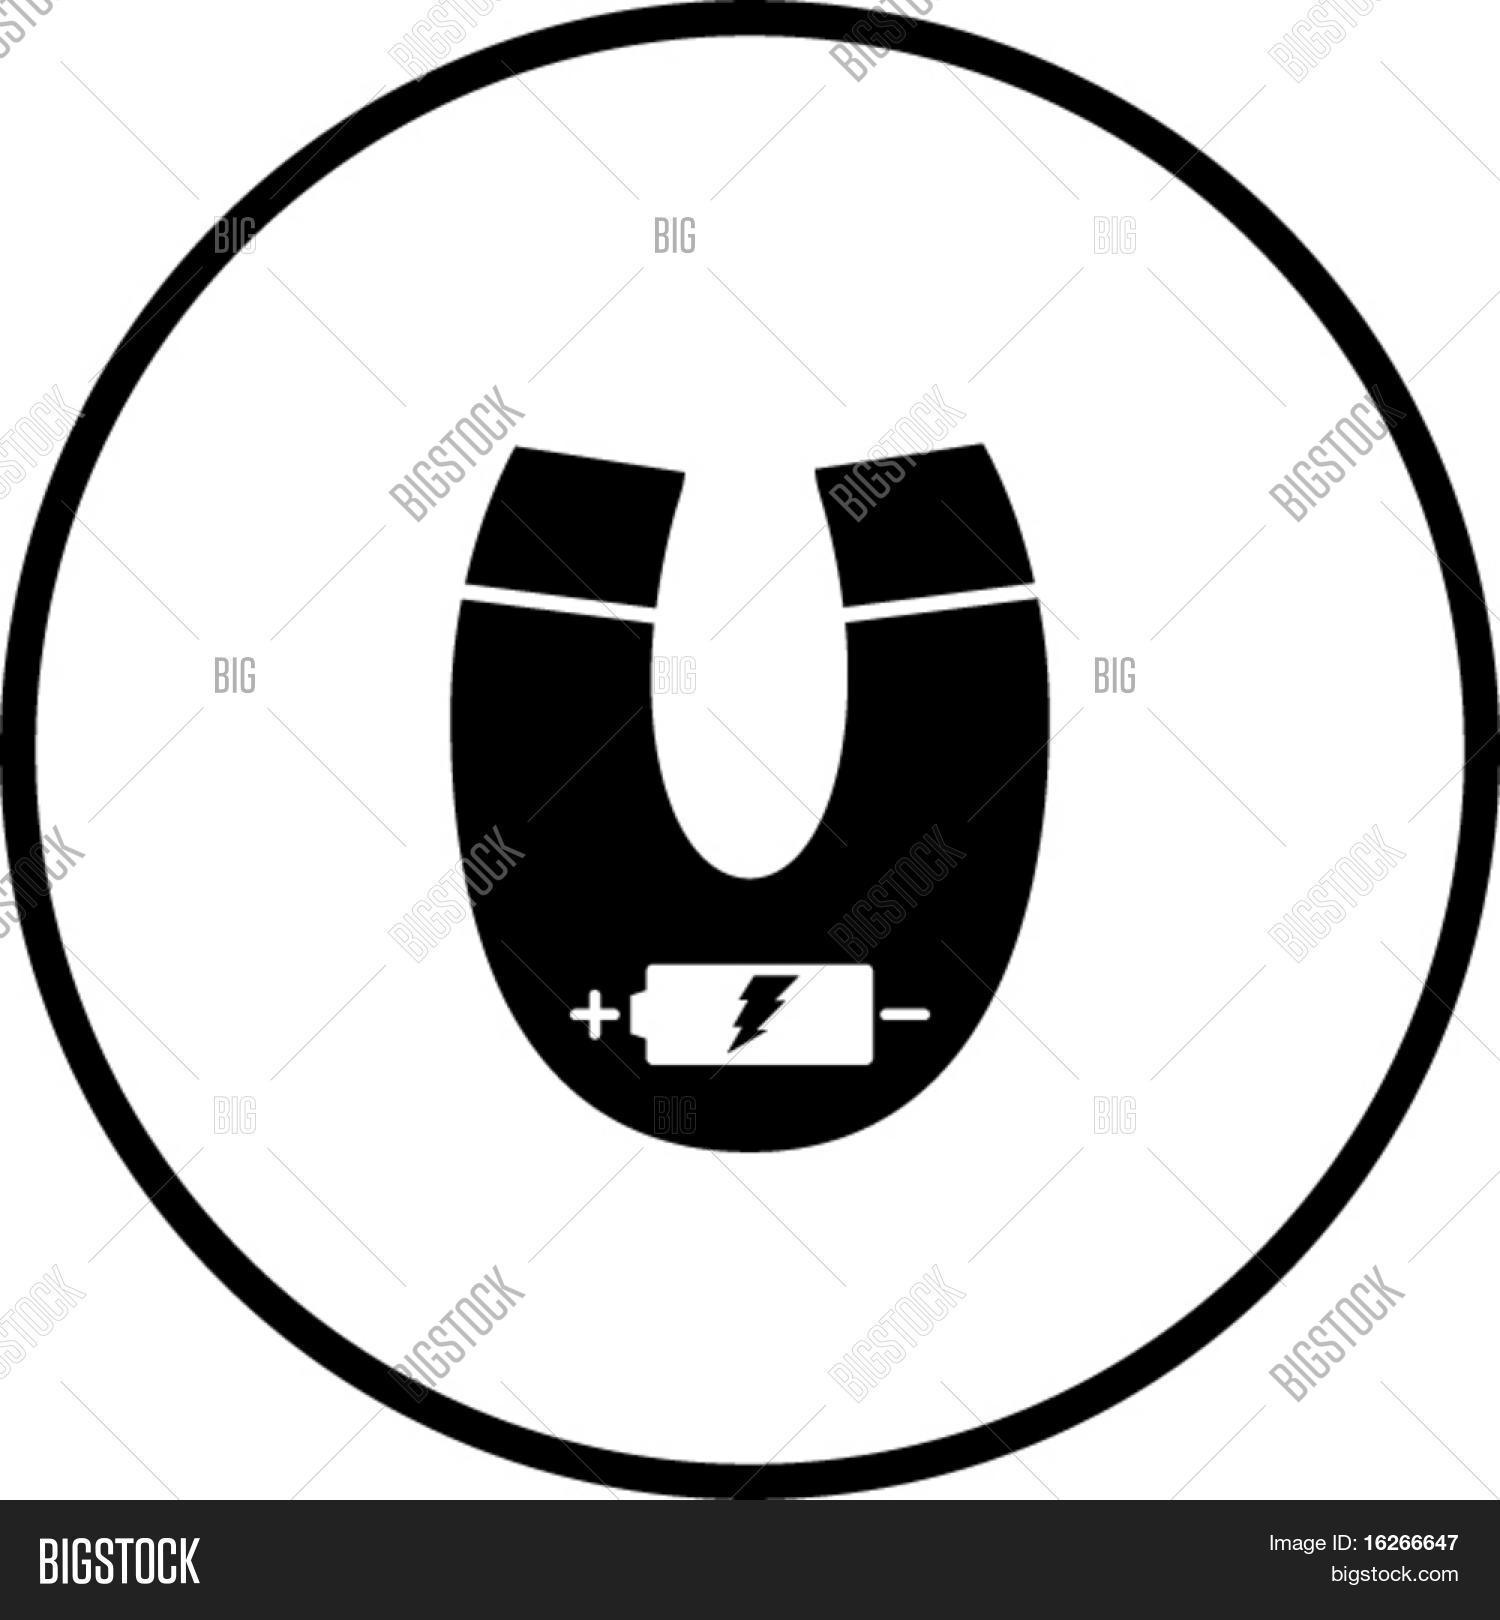 Electromagnet Symbol Vector & Photo (Free Trial) | Bigstock